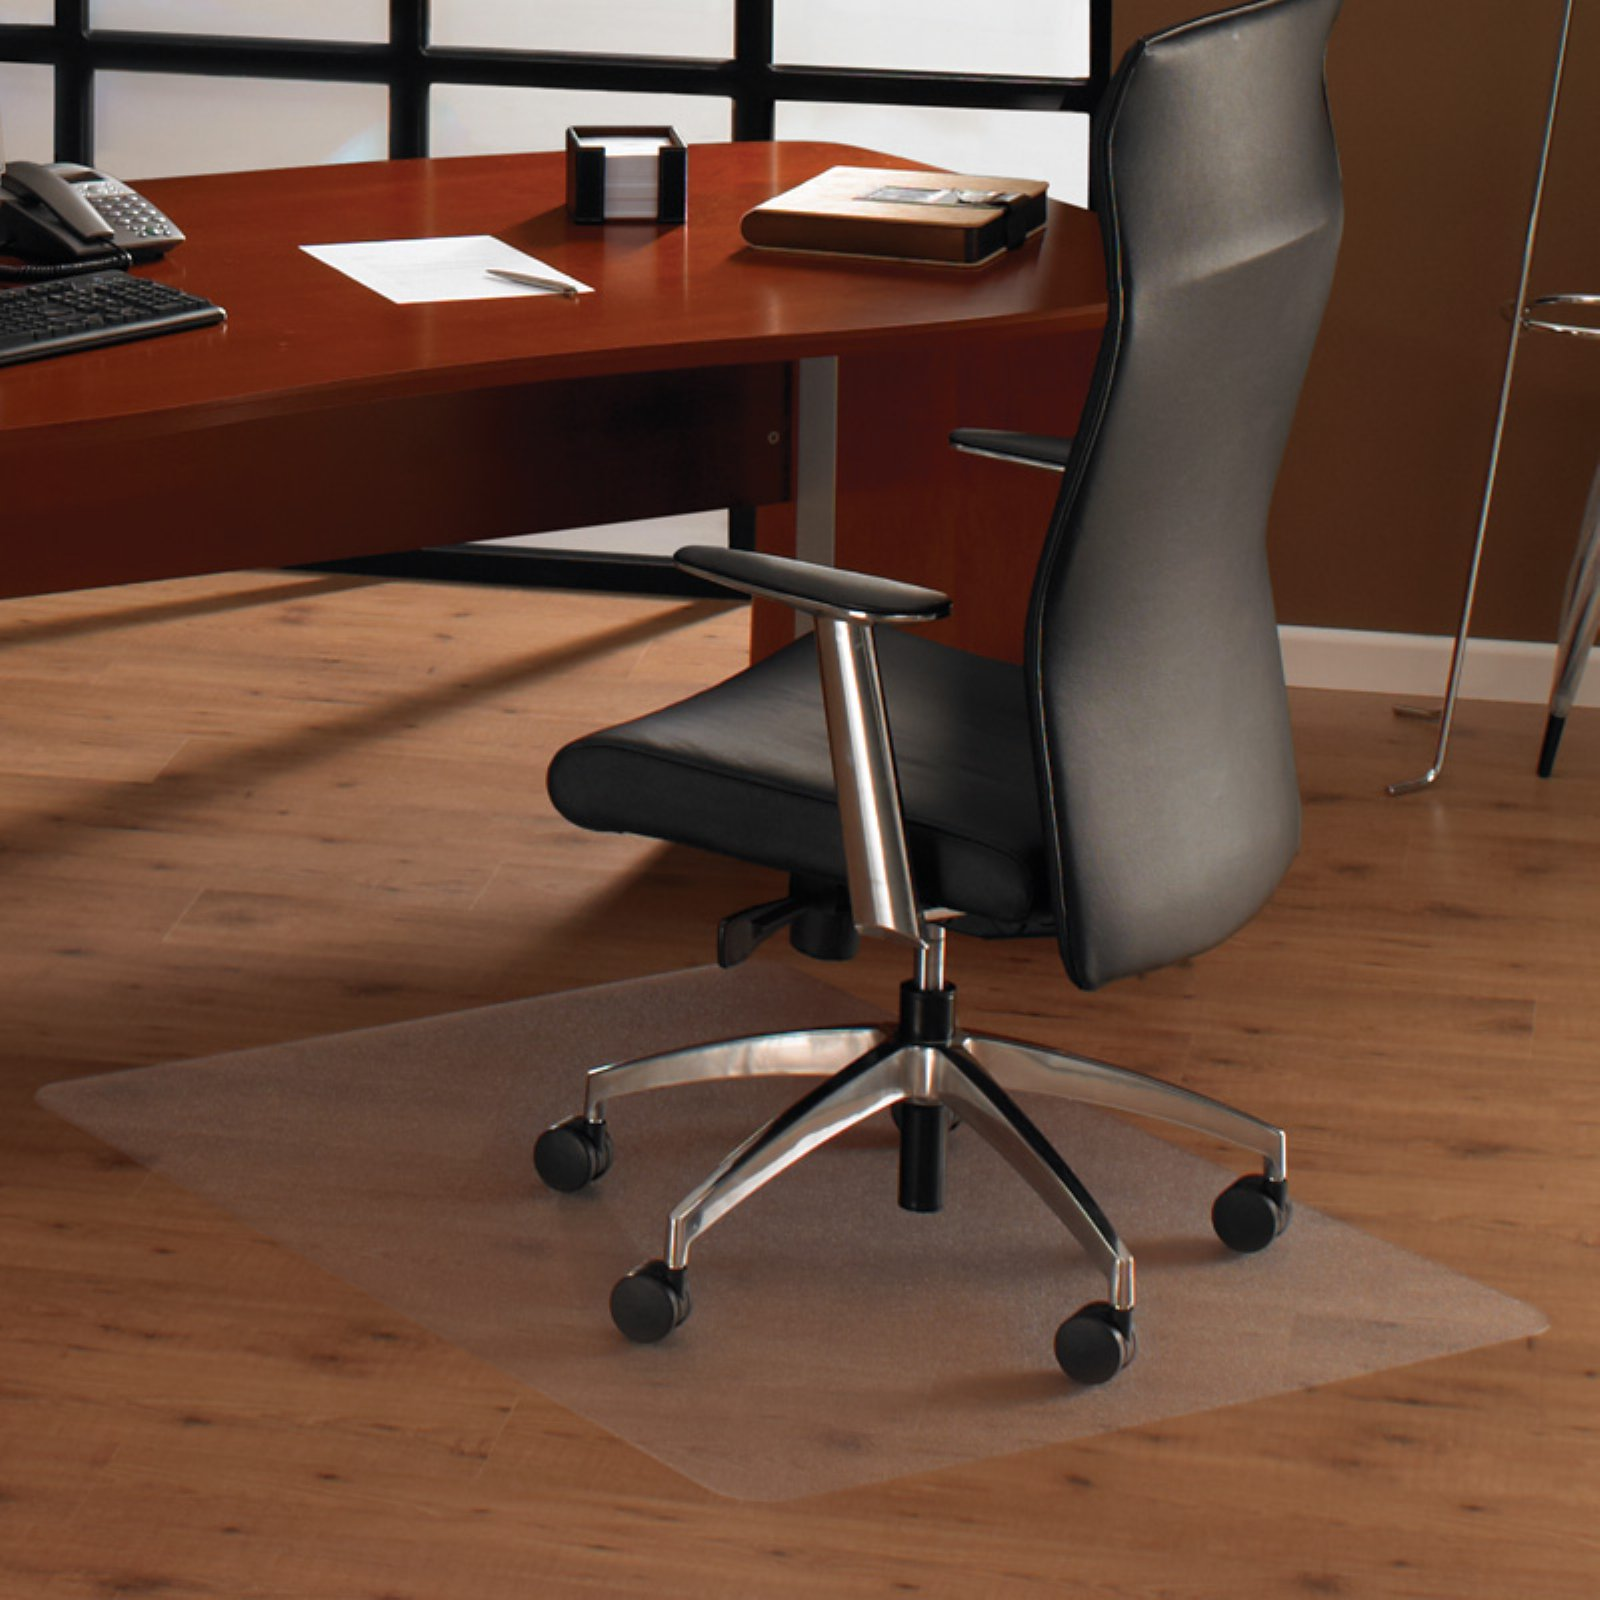 Floortex Cleartex Polycarbonate Ultimat Chair Mat